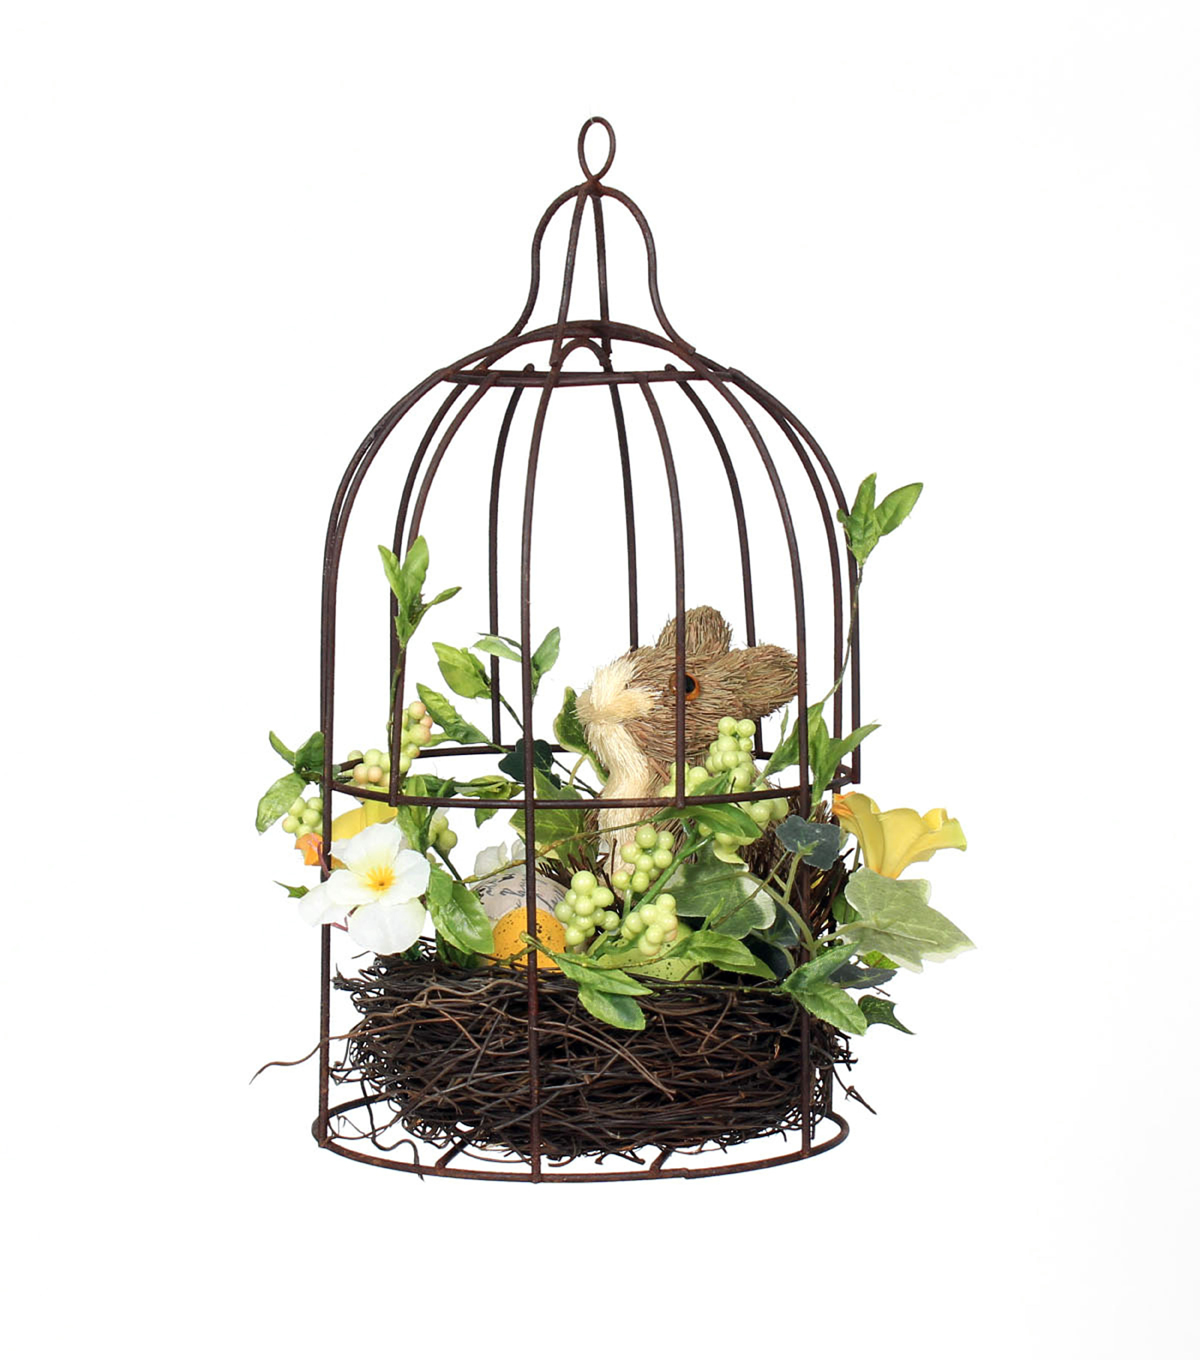 Easter Sisal & Bunny in Bird Cage Table Decor